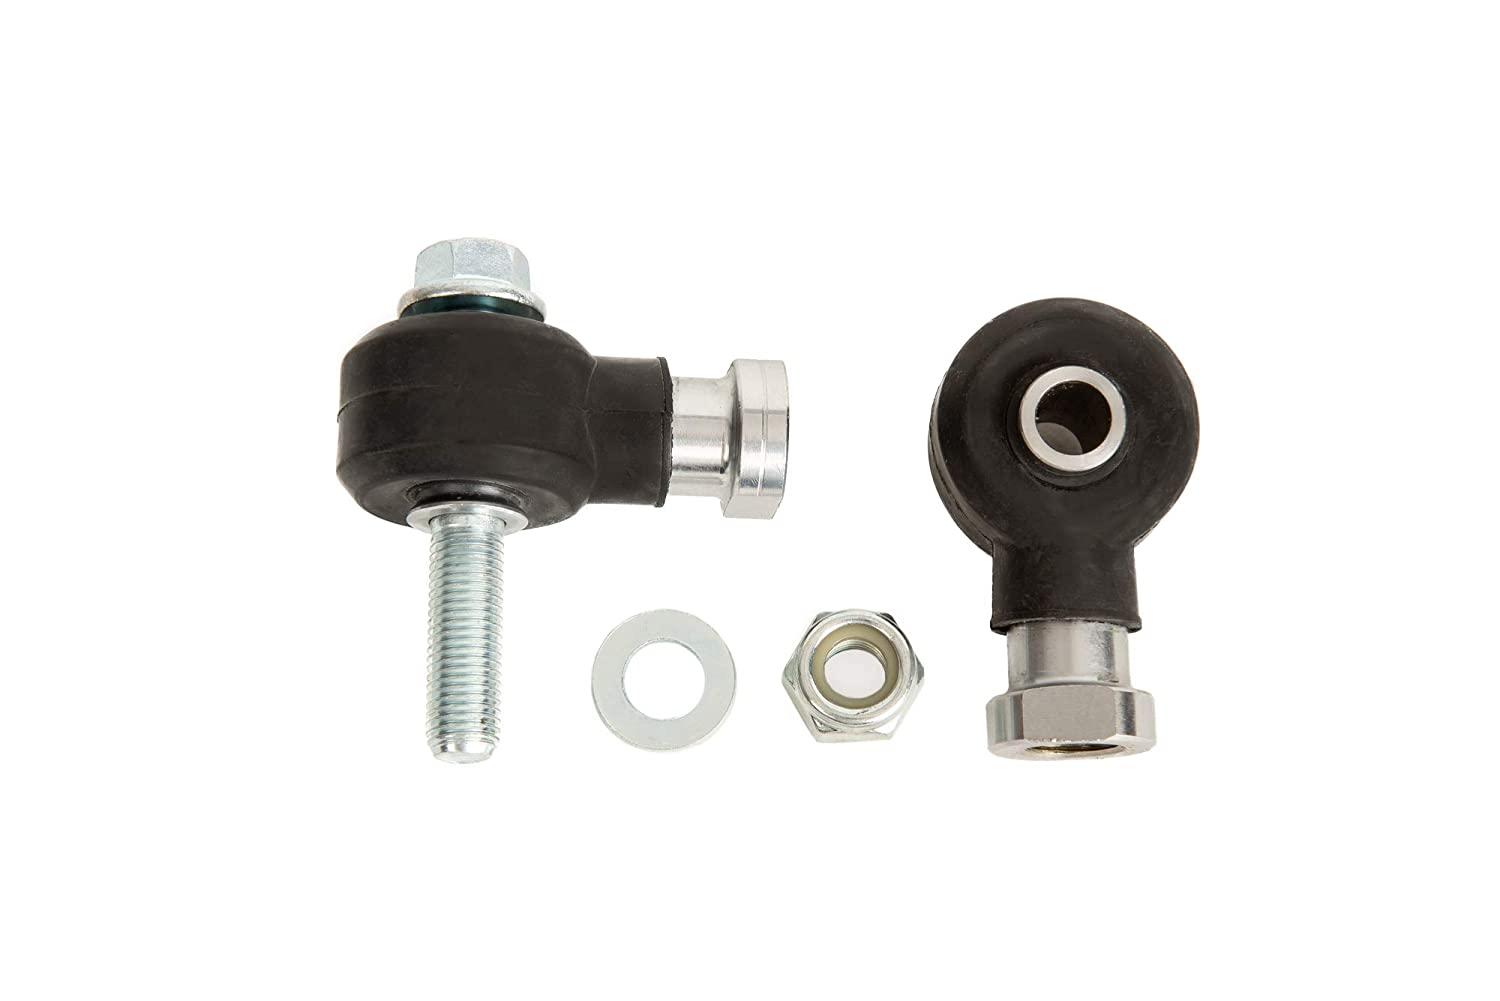 Outer /& Inner American Star 4130 Chromoly OEM Style Sealed Tie Rod Ends for Most Polaris ATVS Replaces Polaris Part Numbers 7061138 and 7061139